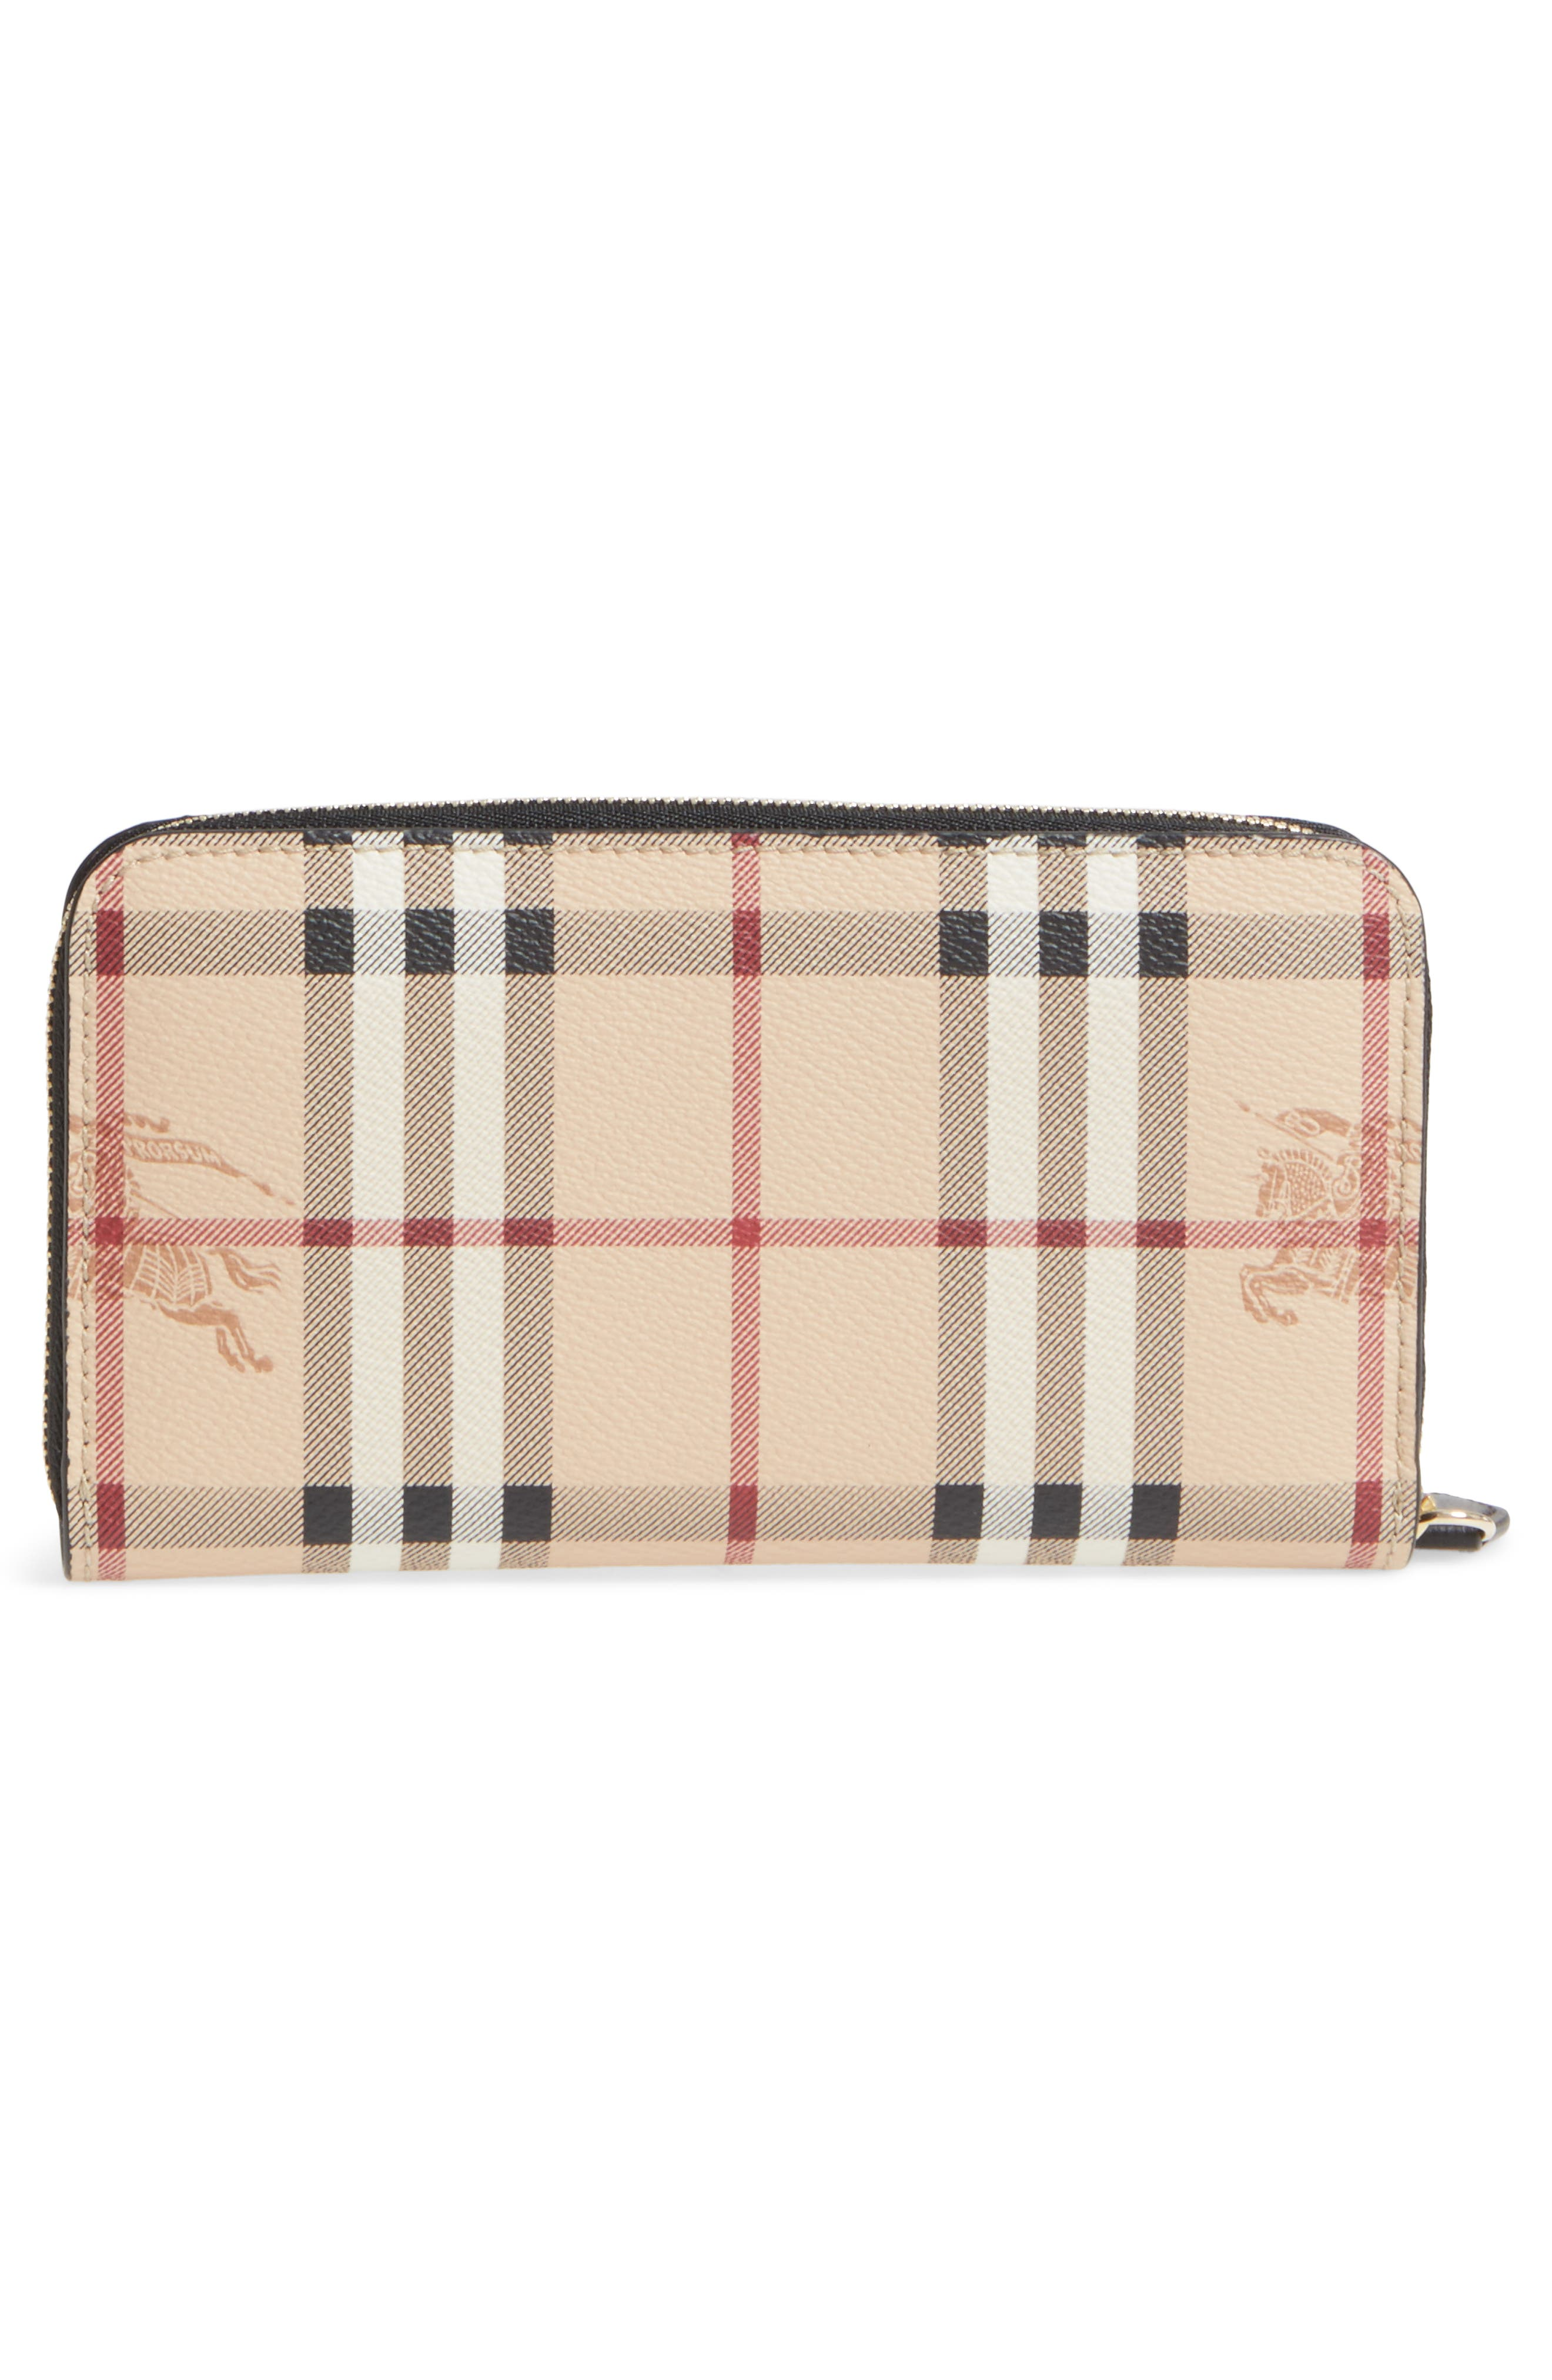 Elmore Check Coated Canvas & Leather Zip Around Wallet,                             Alternate thumbnail 3, color,